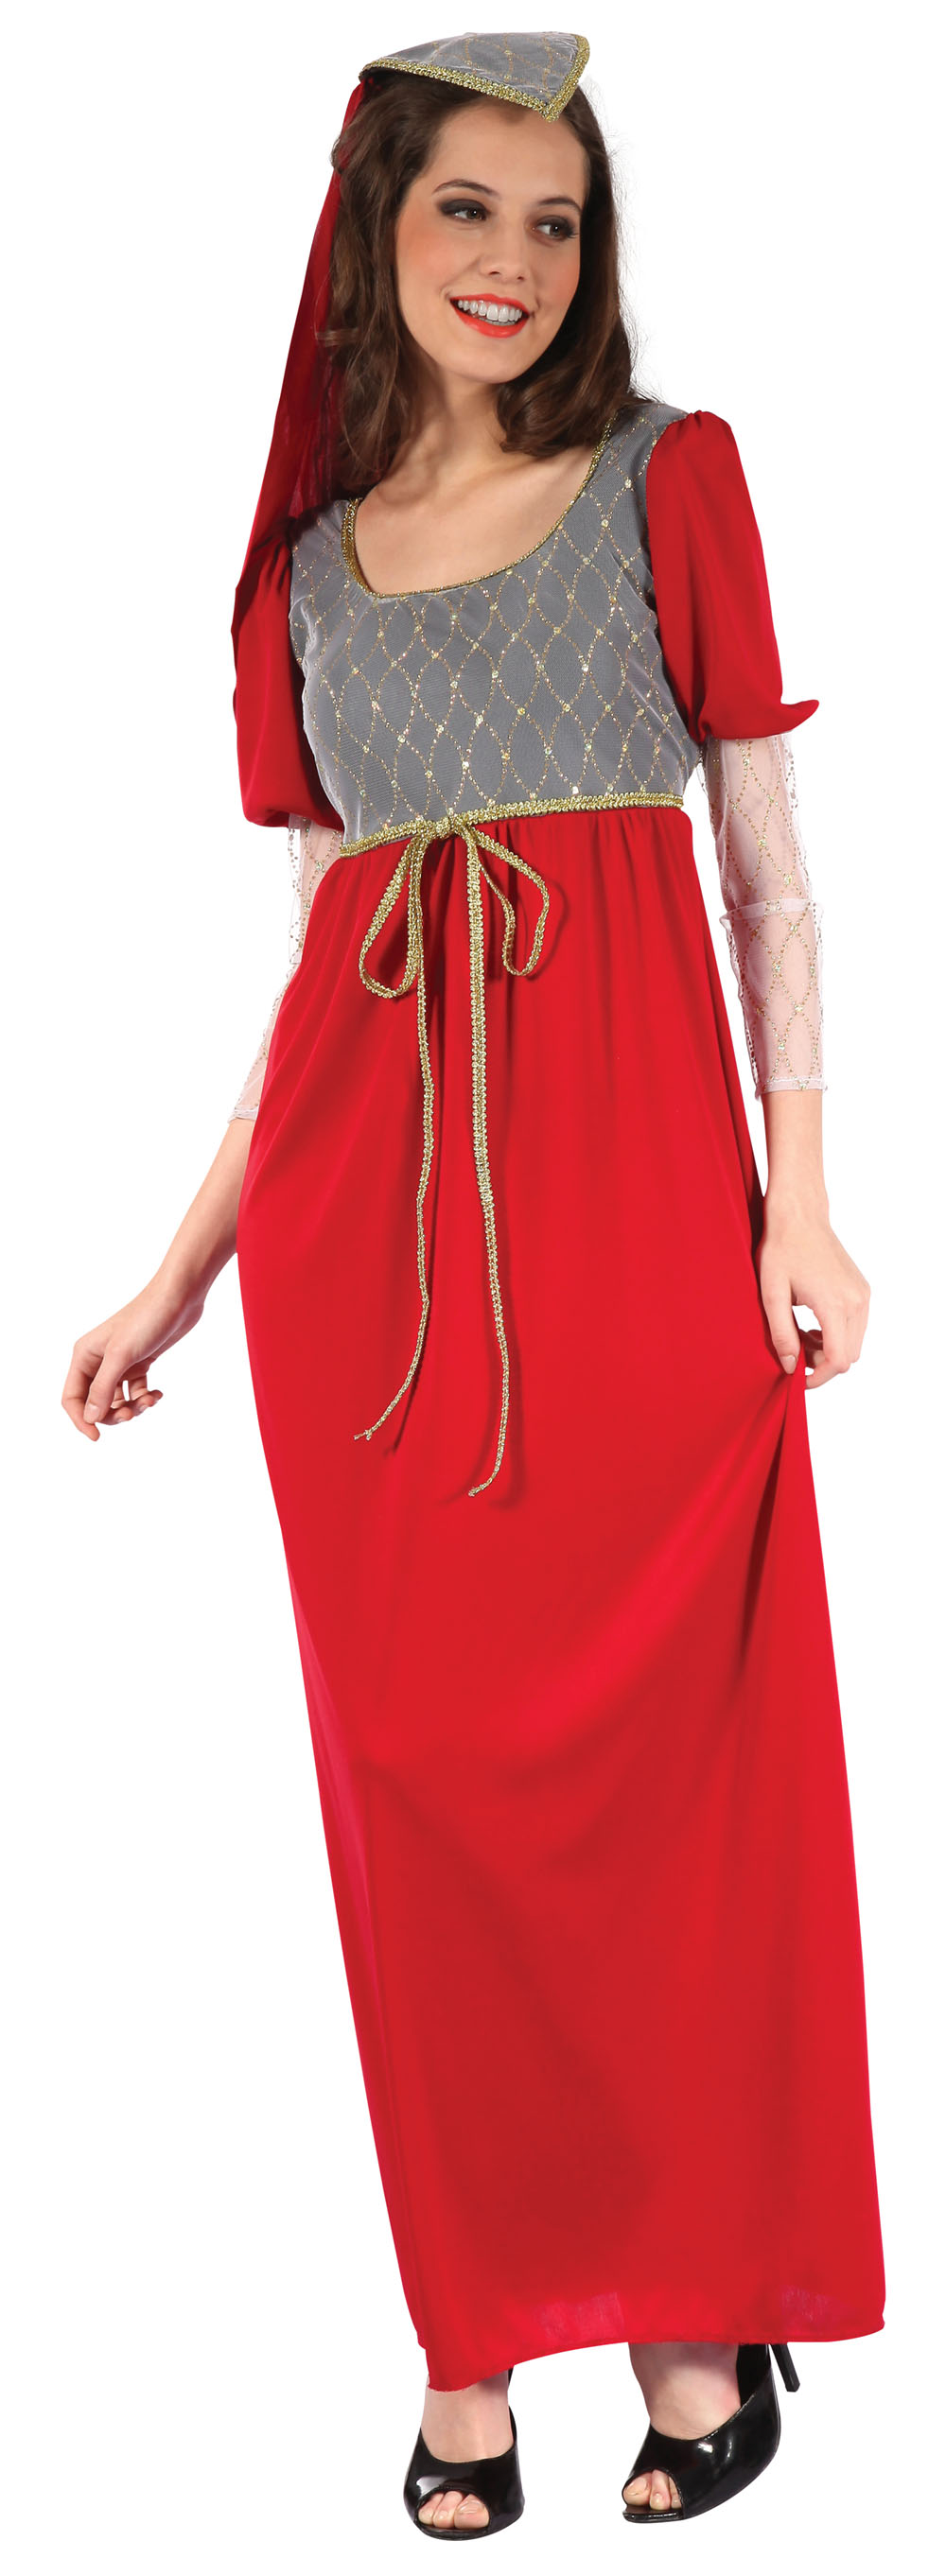 Ladies Medieval Red Princess Gown Fancy Dress Costume Historic Outfit UK 10-14